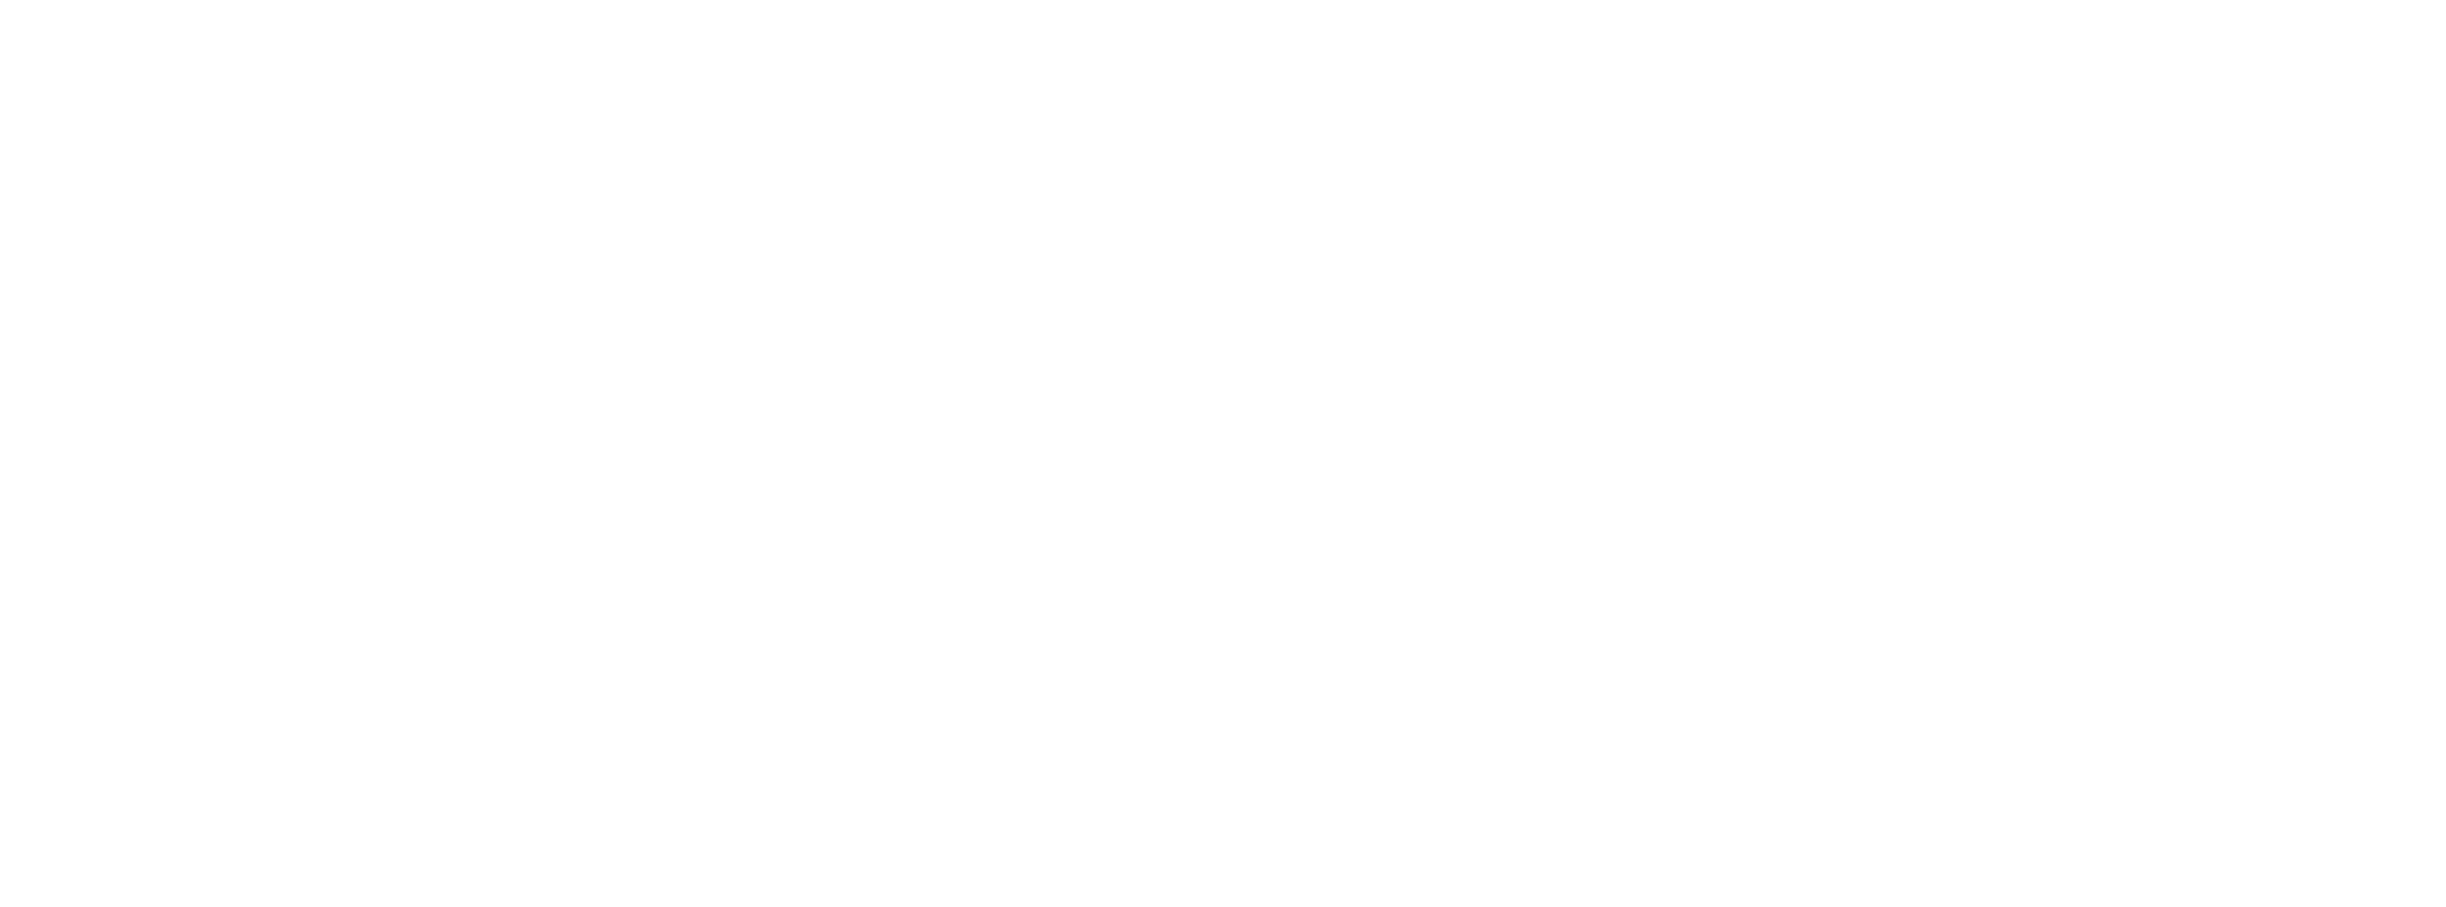 Construction Ltd Commercial Construction Company Uk Midlands South